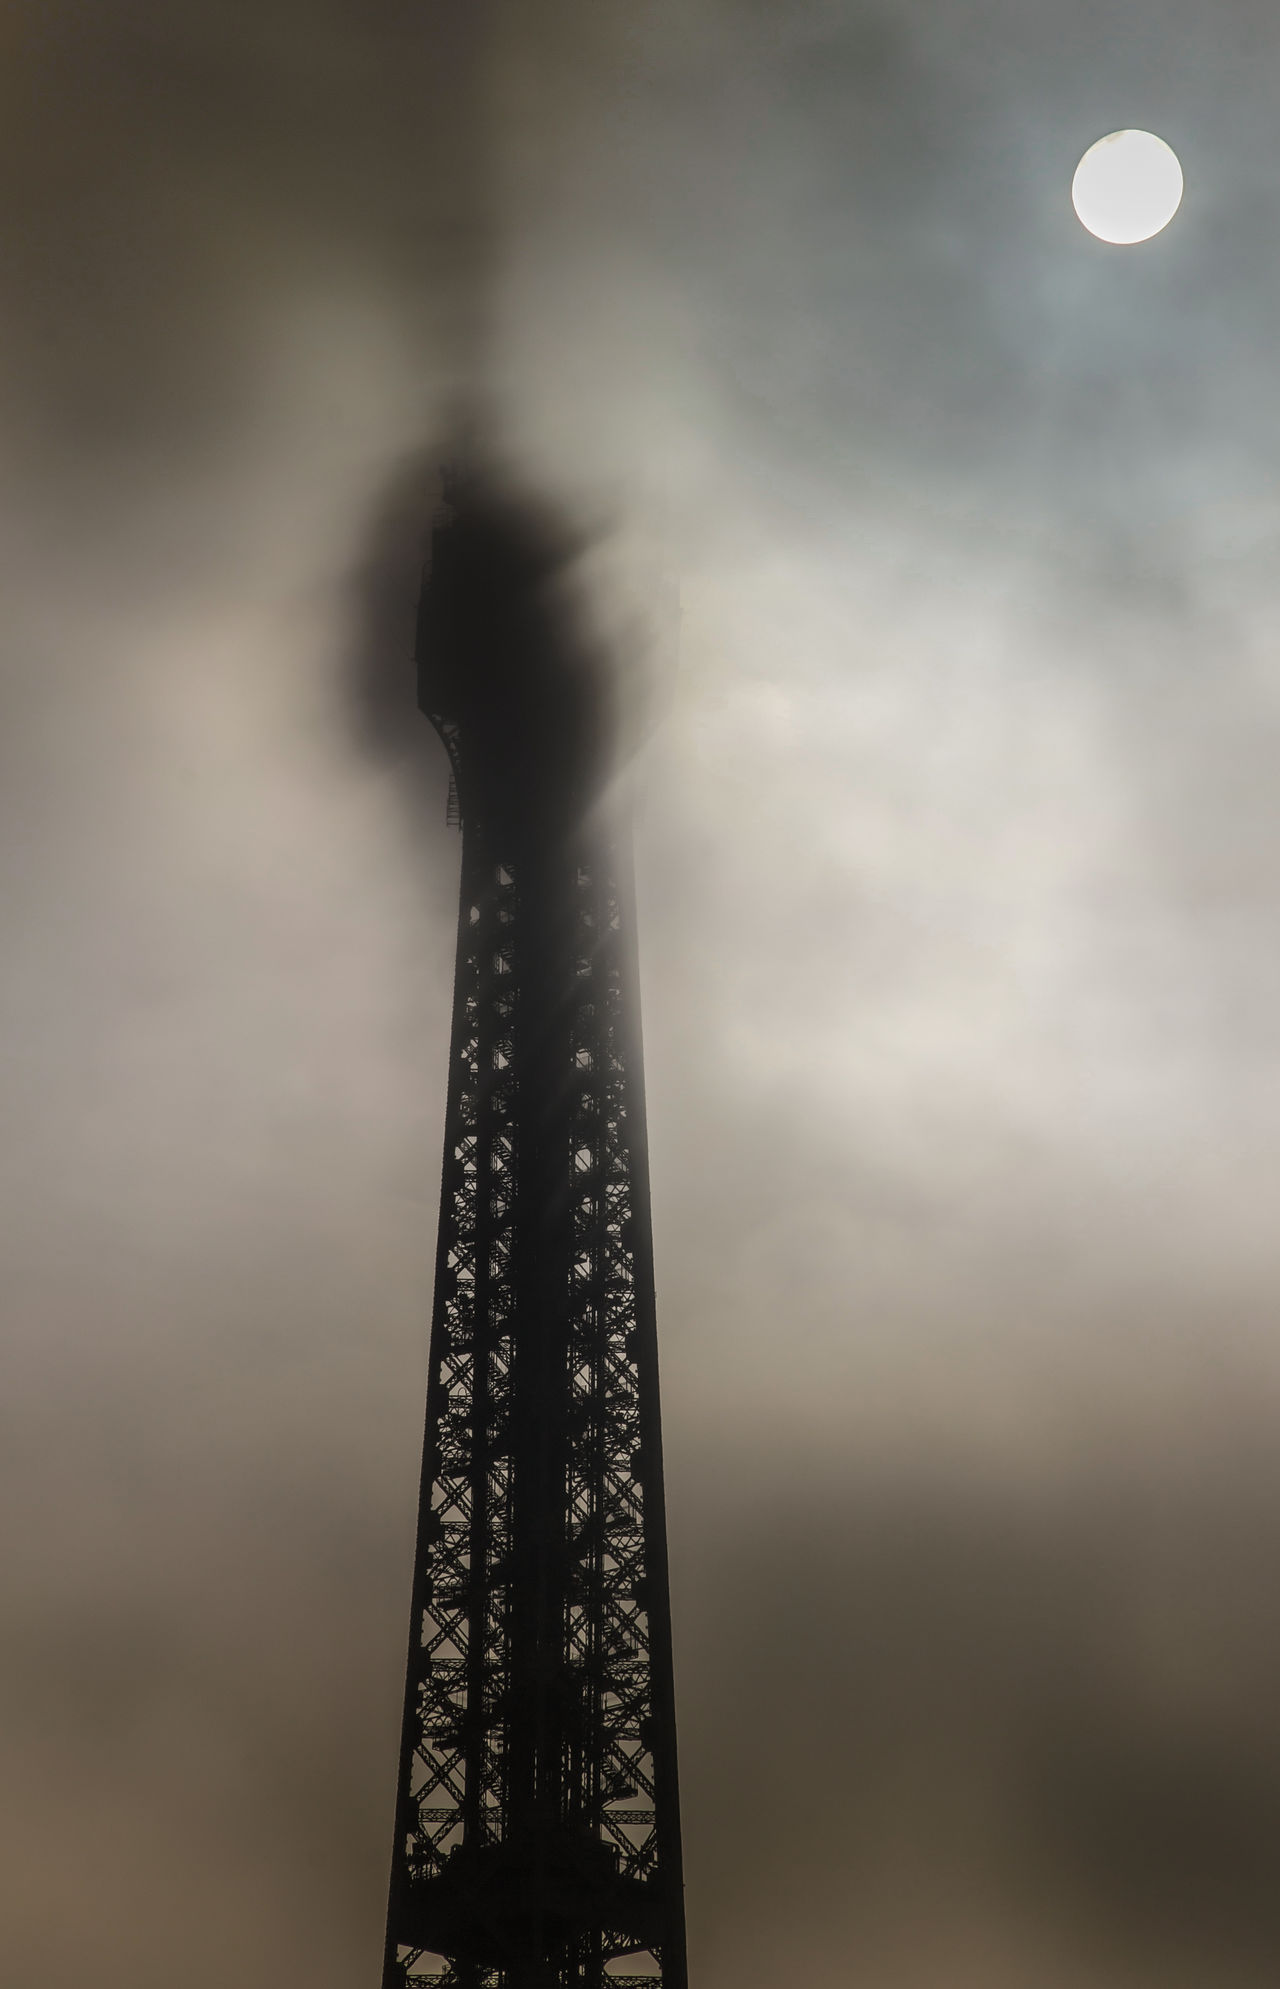 Shooting the Eiffel Tower and Trocadero on several occasions/assignments. Architecture Beautiful Light Capital Cities  Cloud - Sky Eiffel Tower Foggy Day Head Up In The Clouds International Landmark Landmark Only Partially Visible Paris Pattern Rare Weather Phenomenon Sky Steel Structure Sun Rising Against